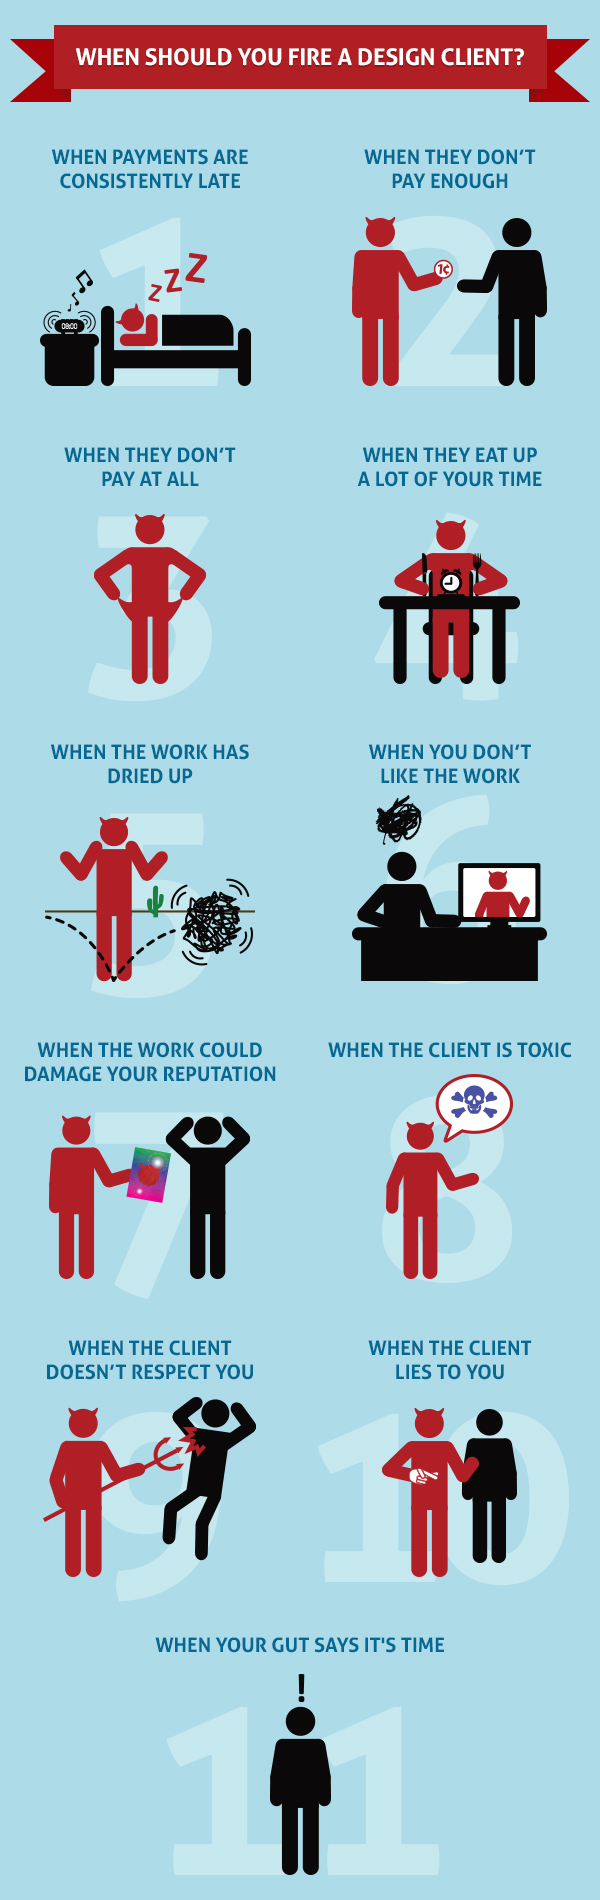 firing-clients-infographic